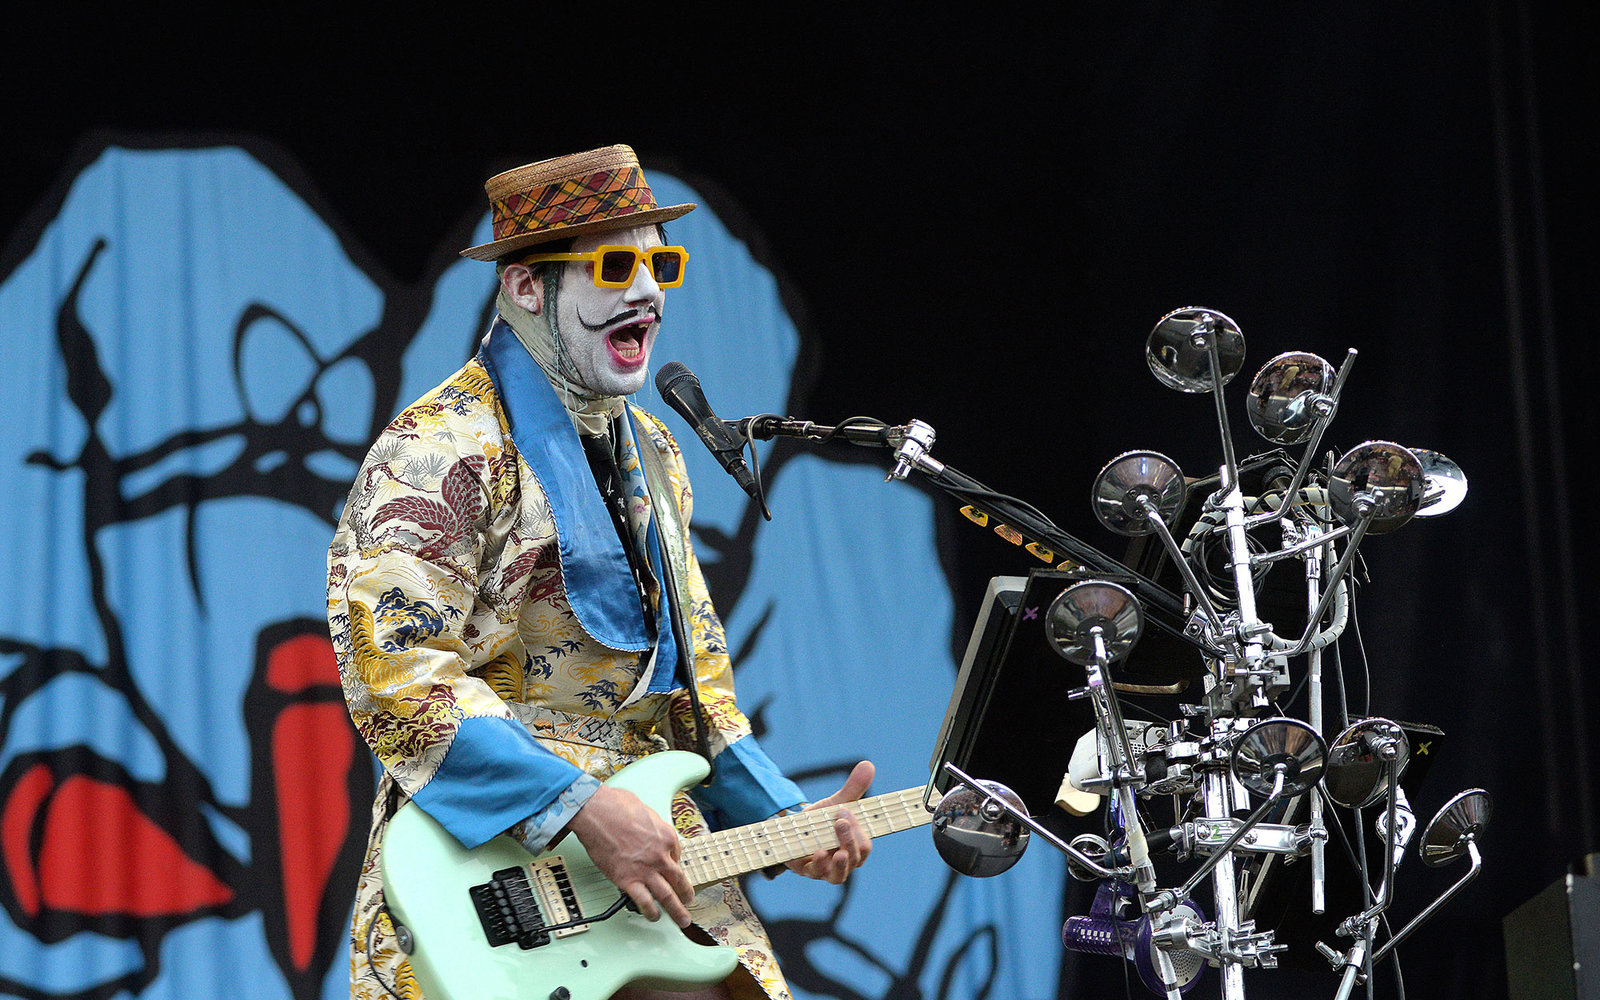 BUDAPEST, HUNGARY - AUGUST 16:  Wes Borland of Limp Bizkit performs on stage during day seven of Sziget festval at Obudai Island on August 16, 2015 in Budapest, Hungary.  (Photo by Didier Messens/Redferns)